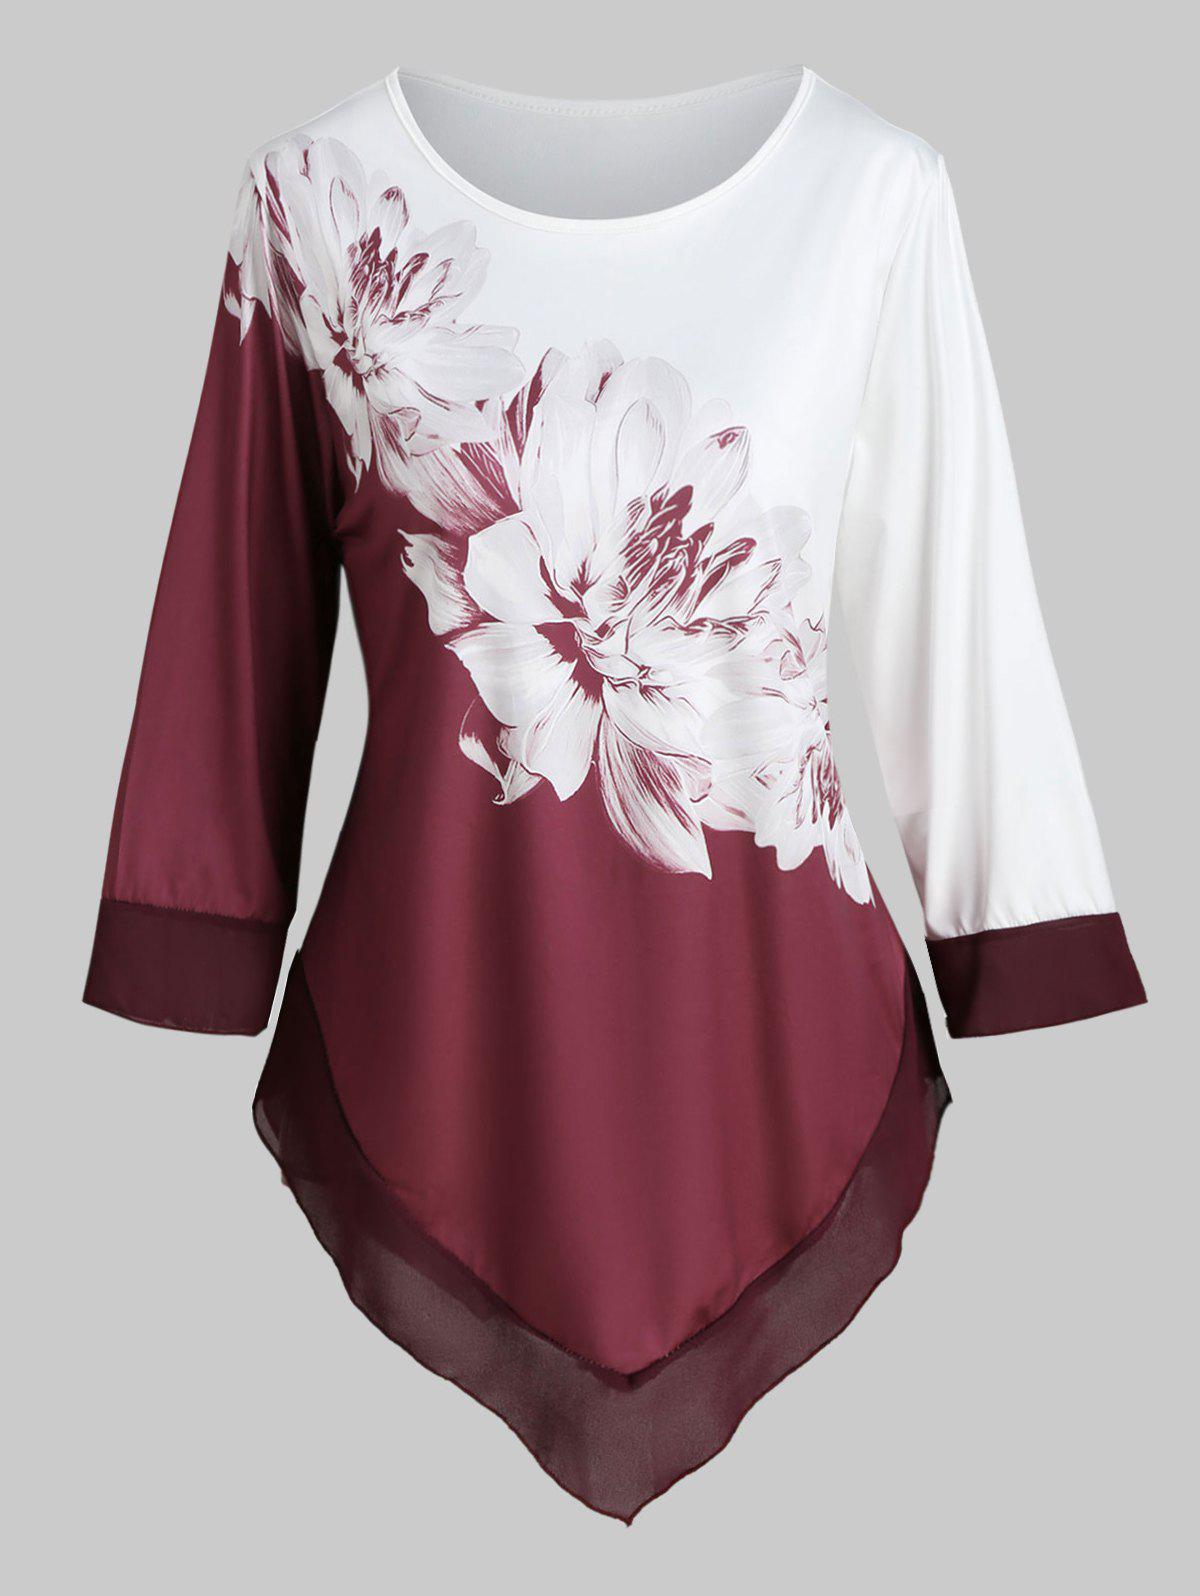 Plus Size Two Tone imprimé floral asymétrique T-shirt - Rouge Vineux L